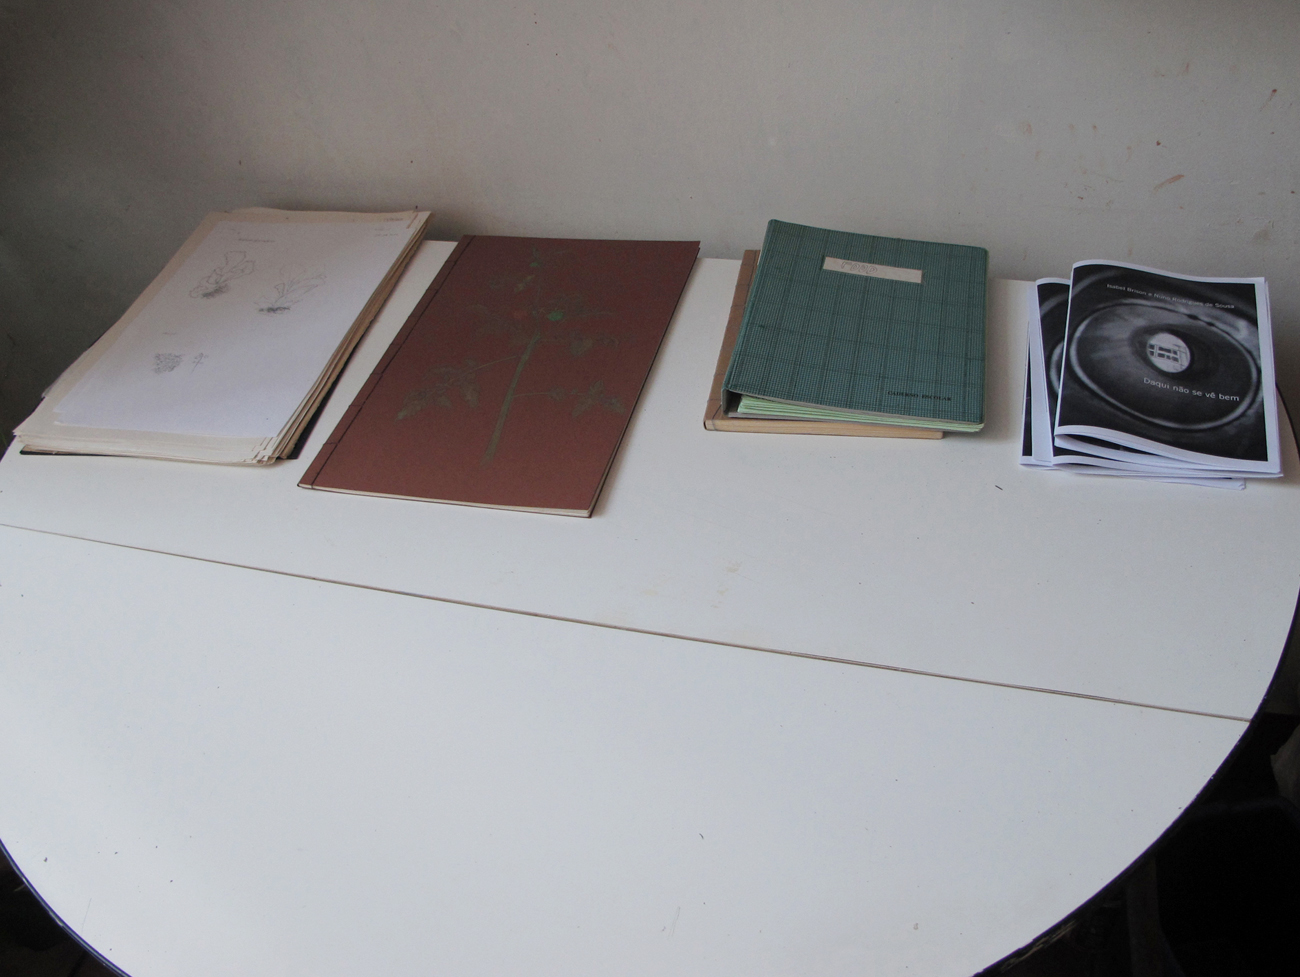 table with booklets